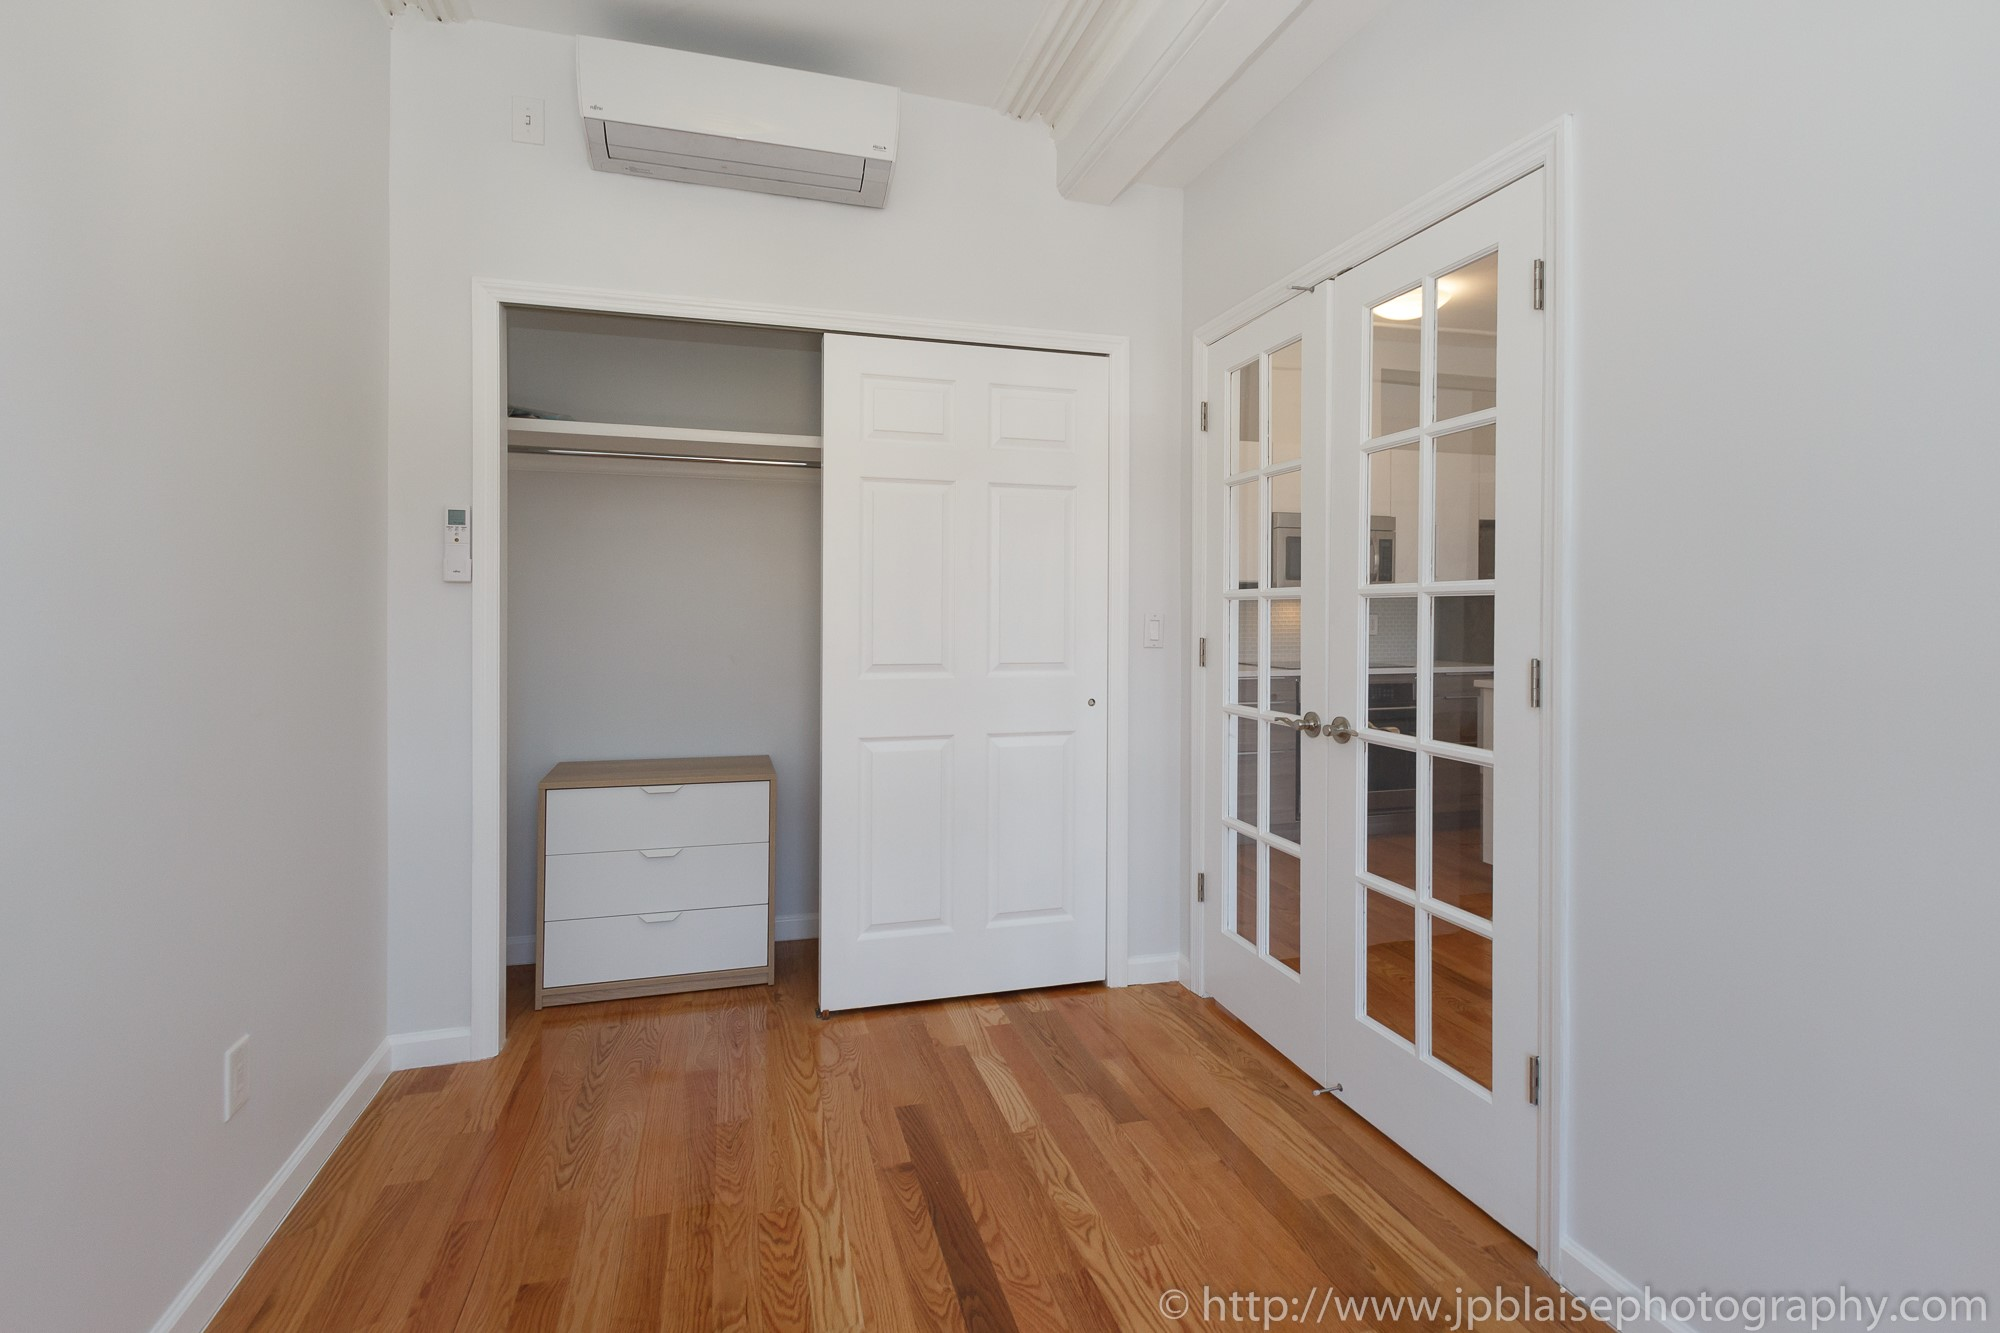 Brooklyn interior photographer work one bedroom in bedford stuyvesant new york closet